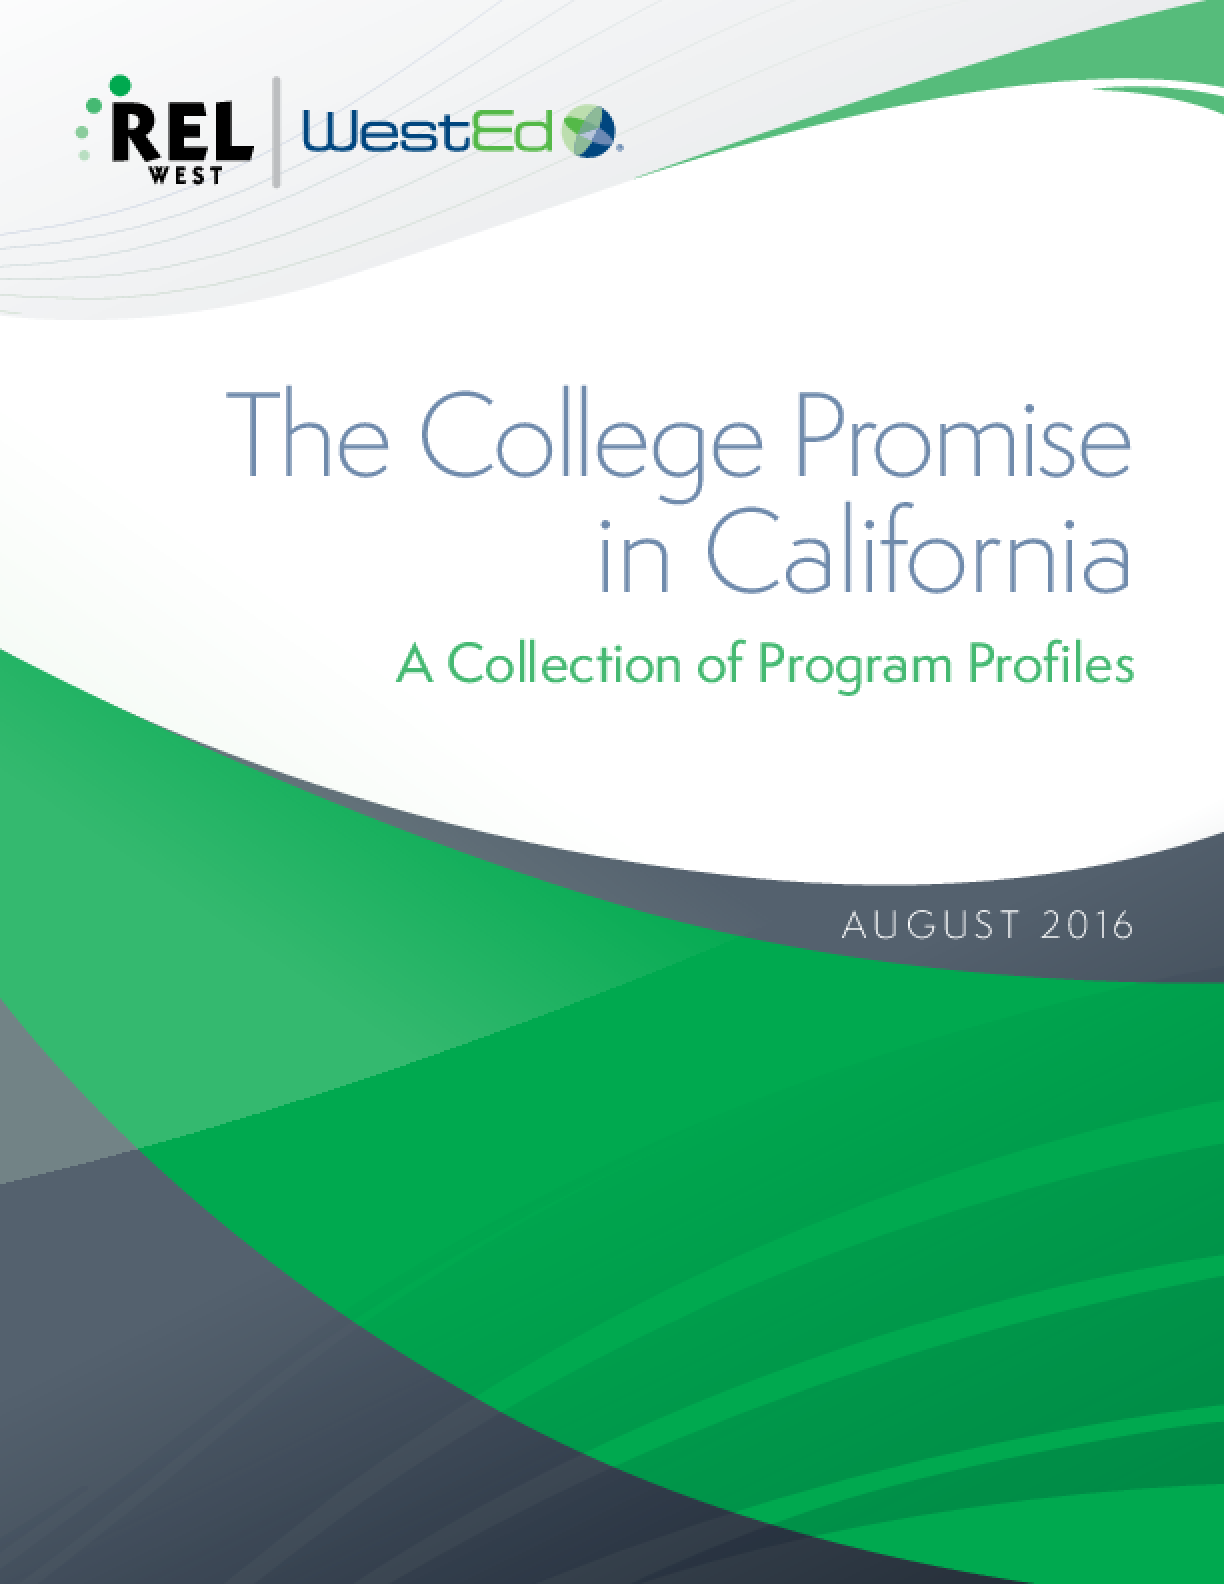 The College Promise in California: A Collection of Program Profiles